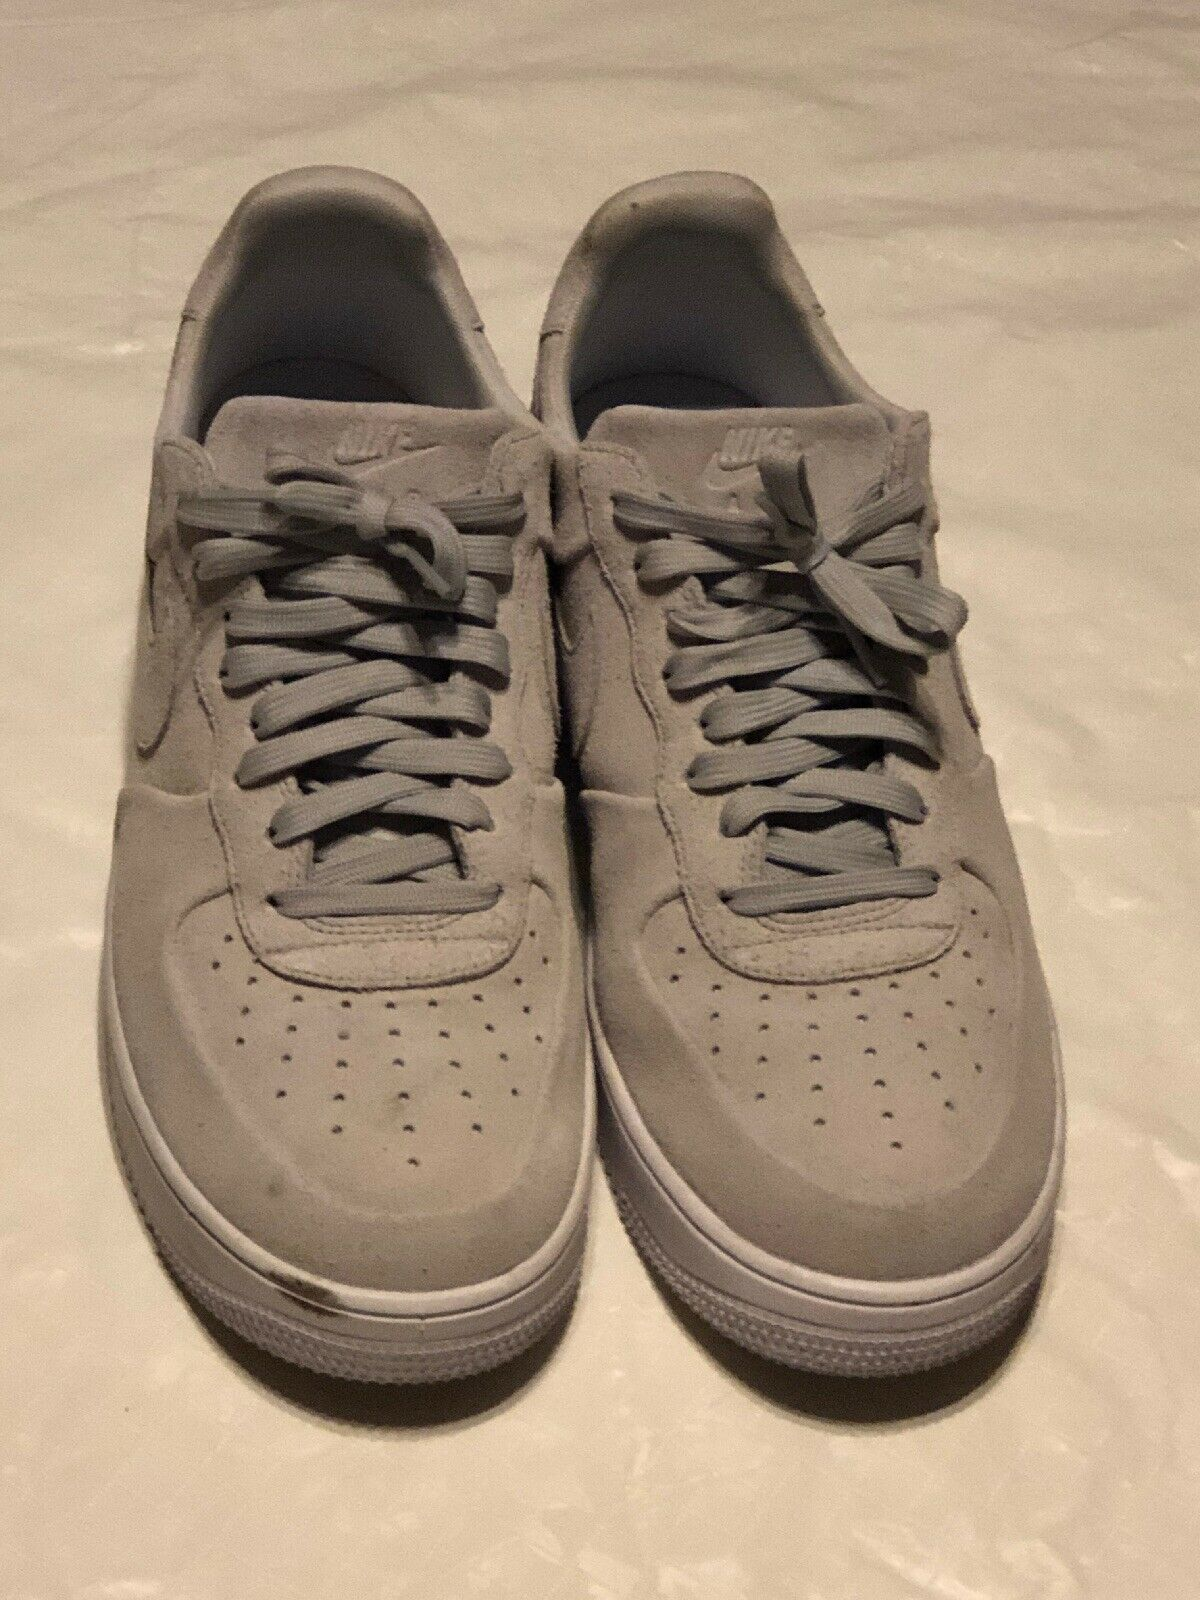 Suede Air Force One Size12